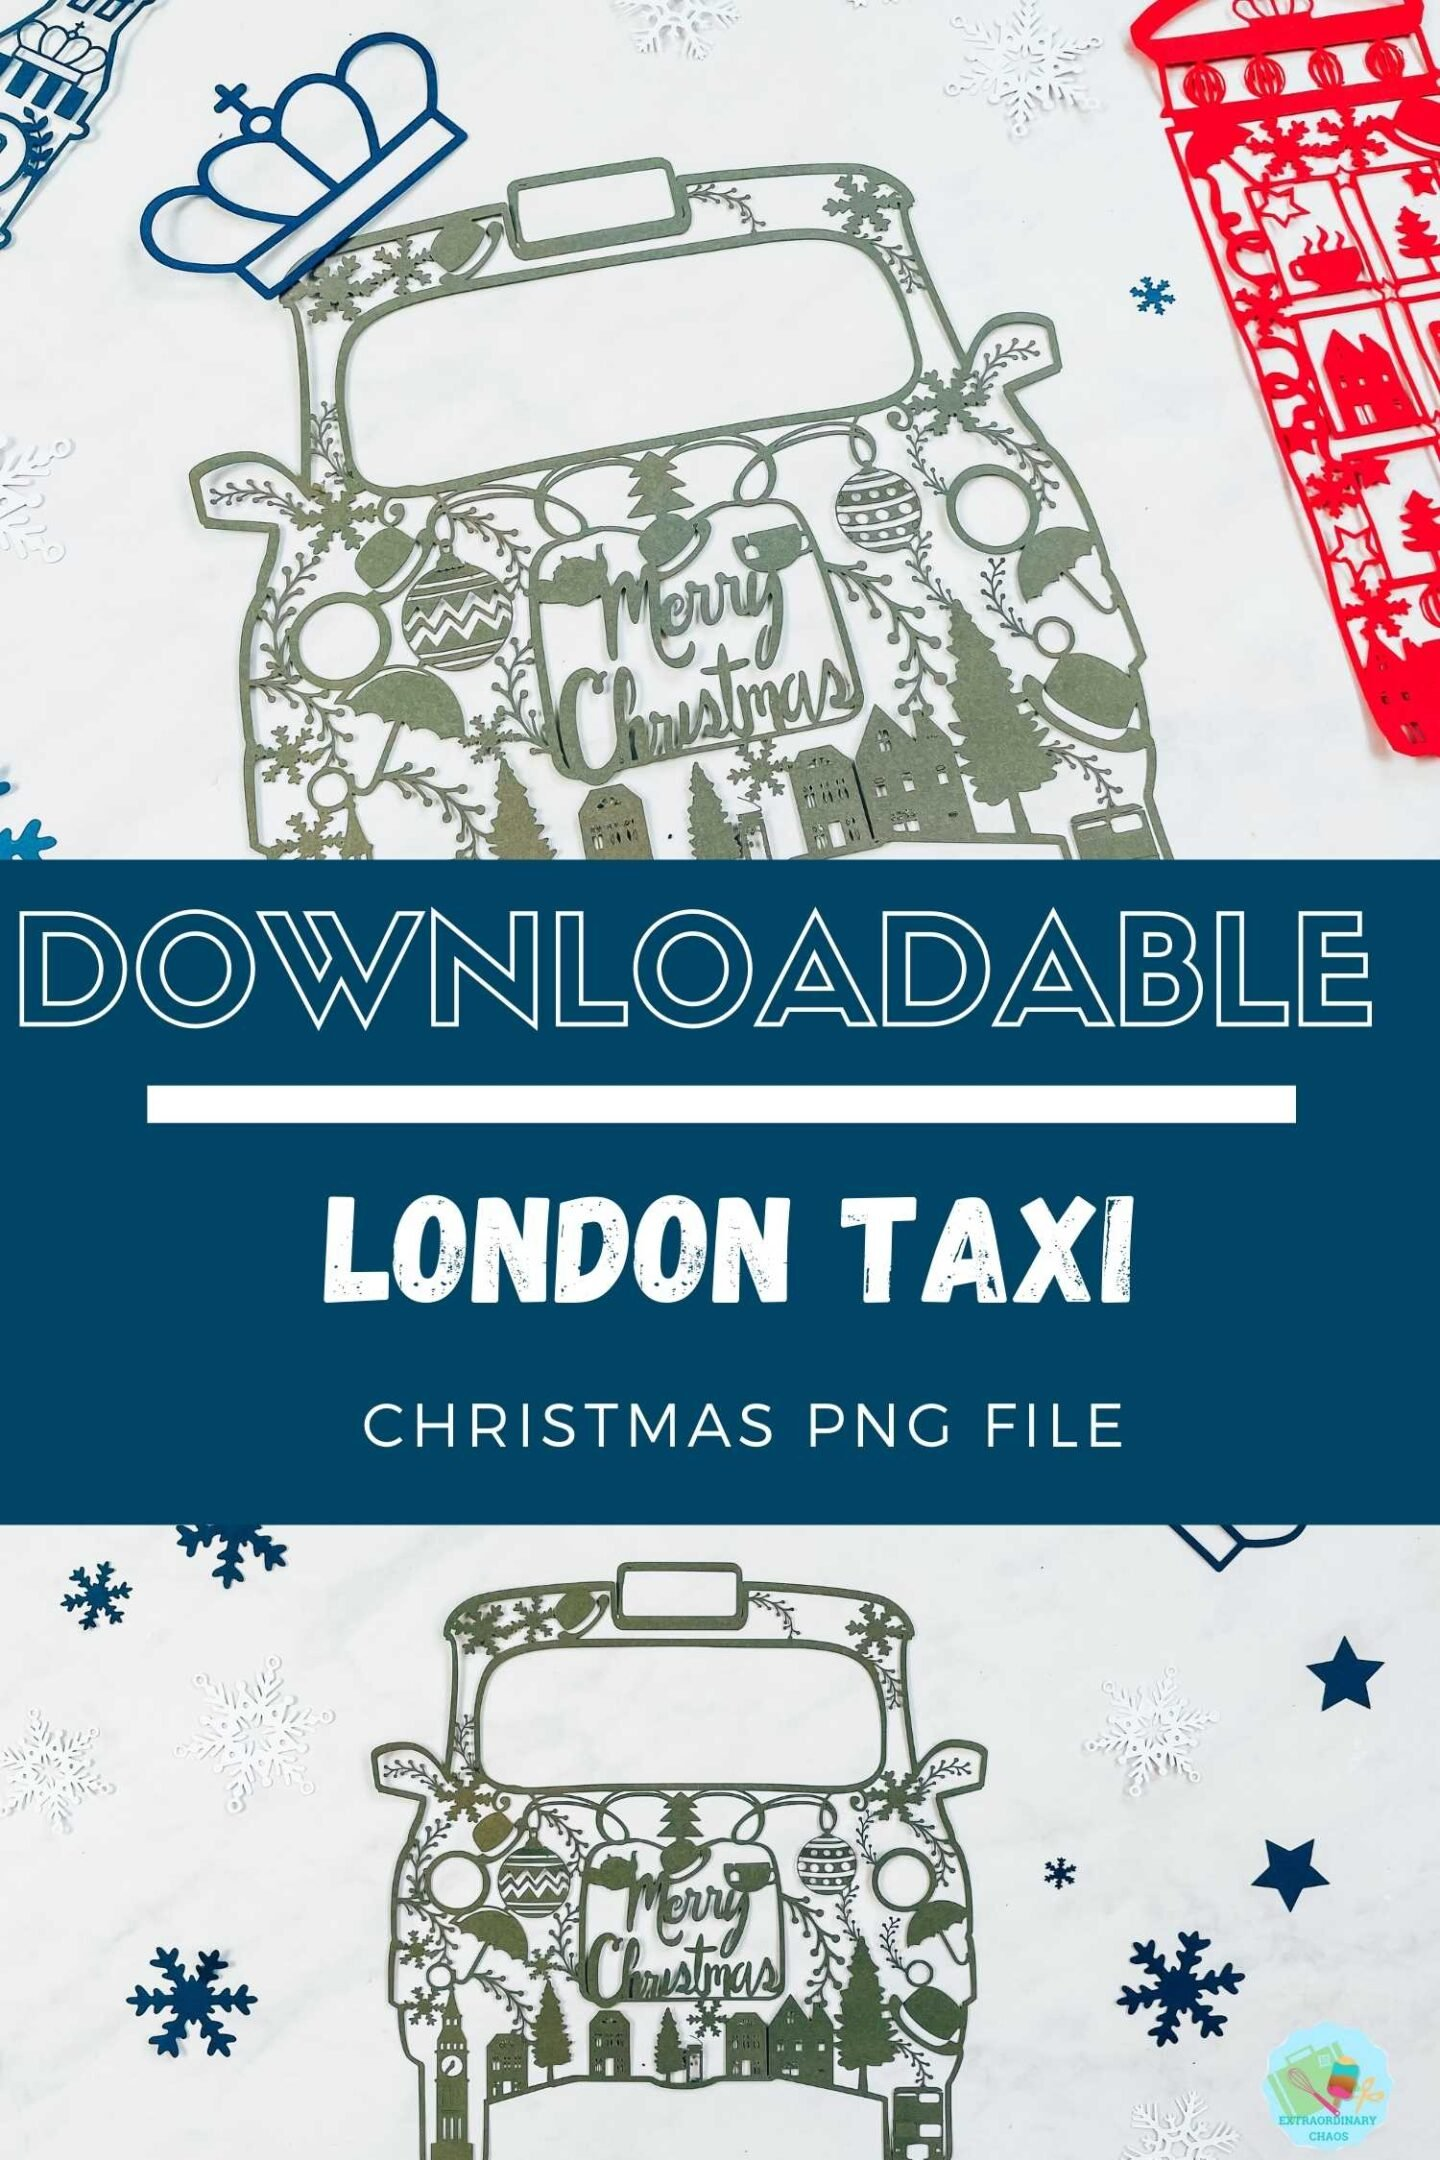 Downloadable Christmas London Taxi PNG file for Cricut Crafts for Christmas Craft projects